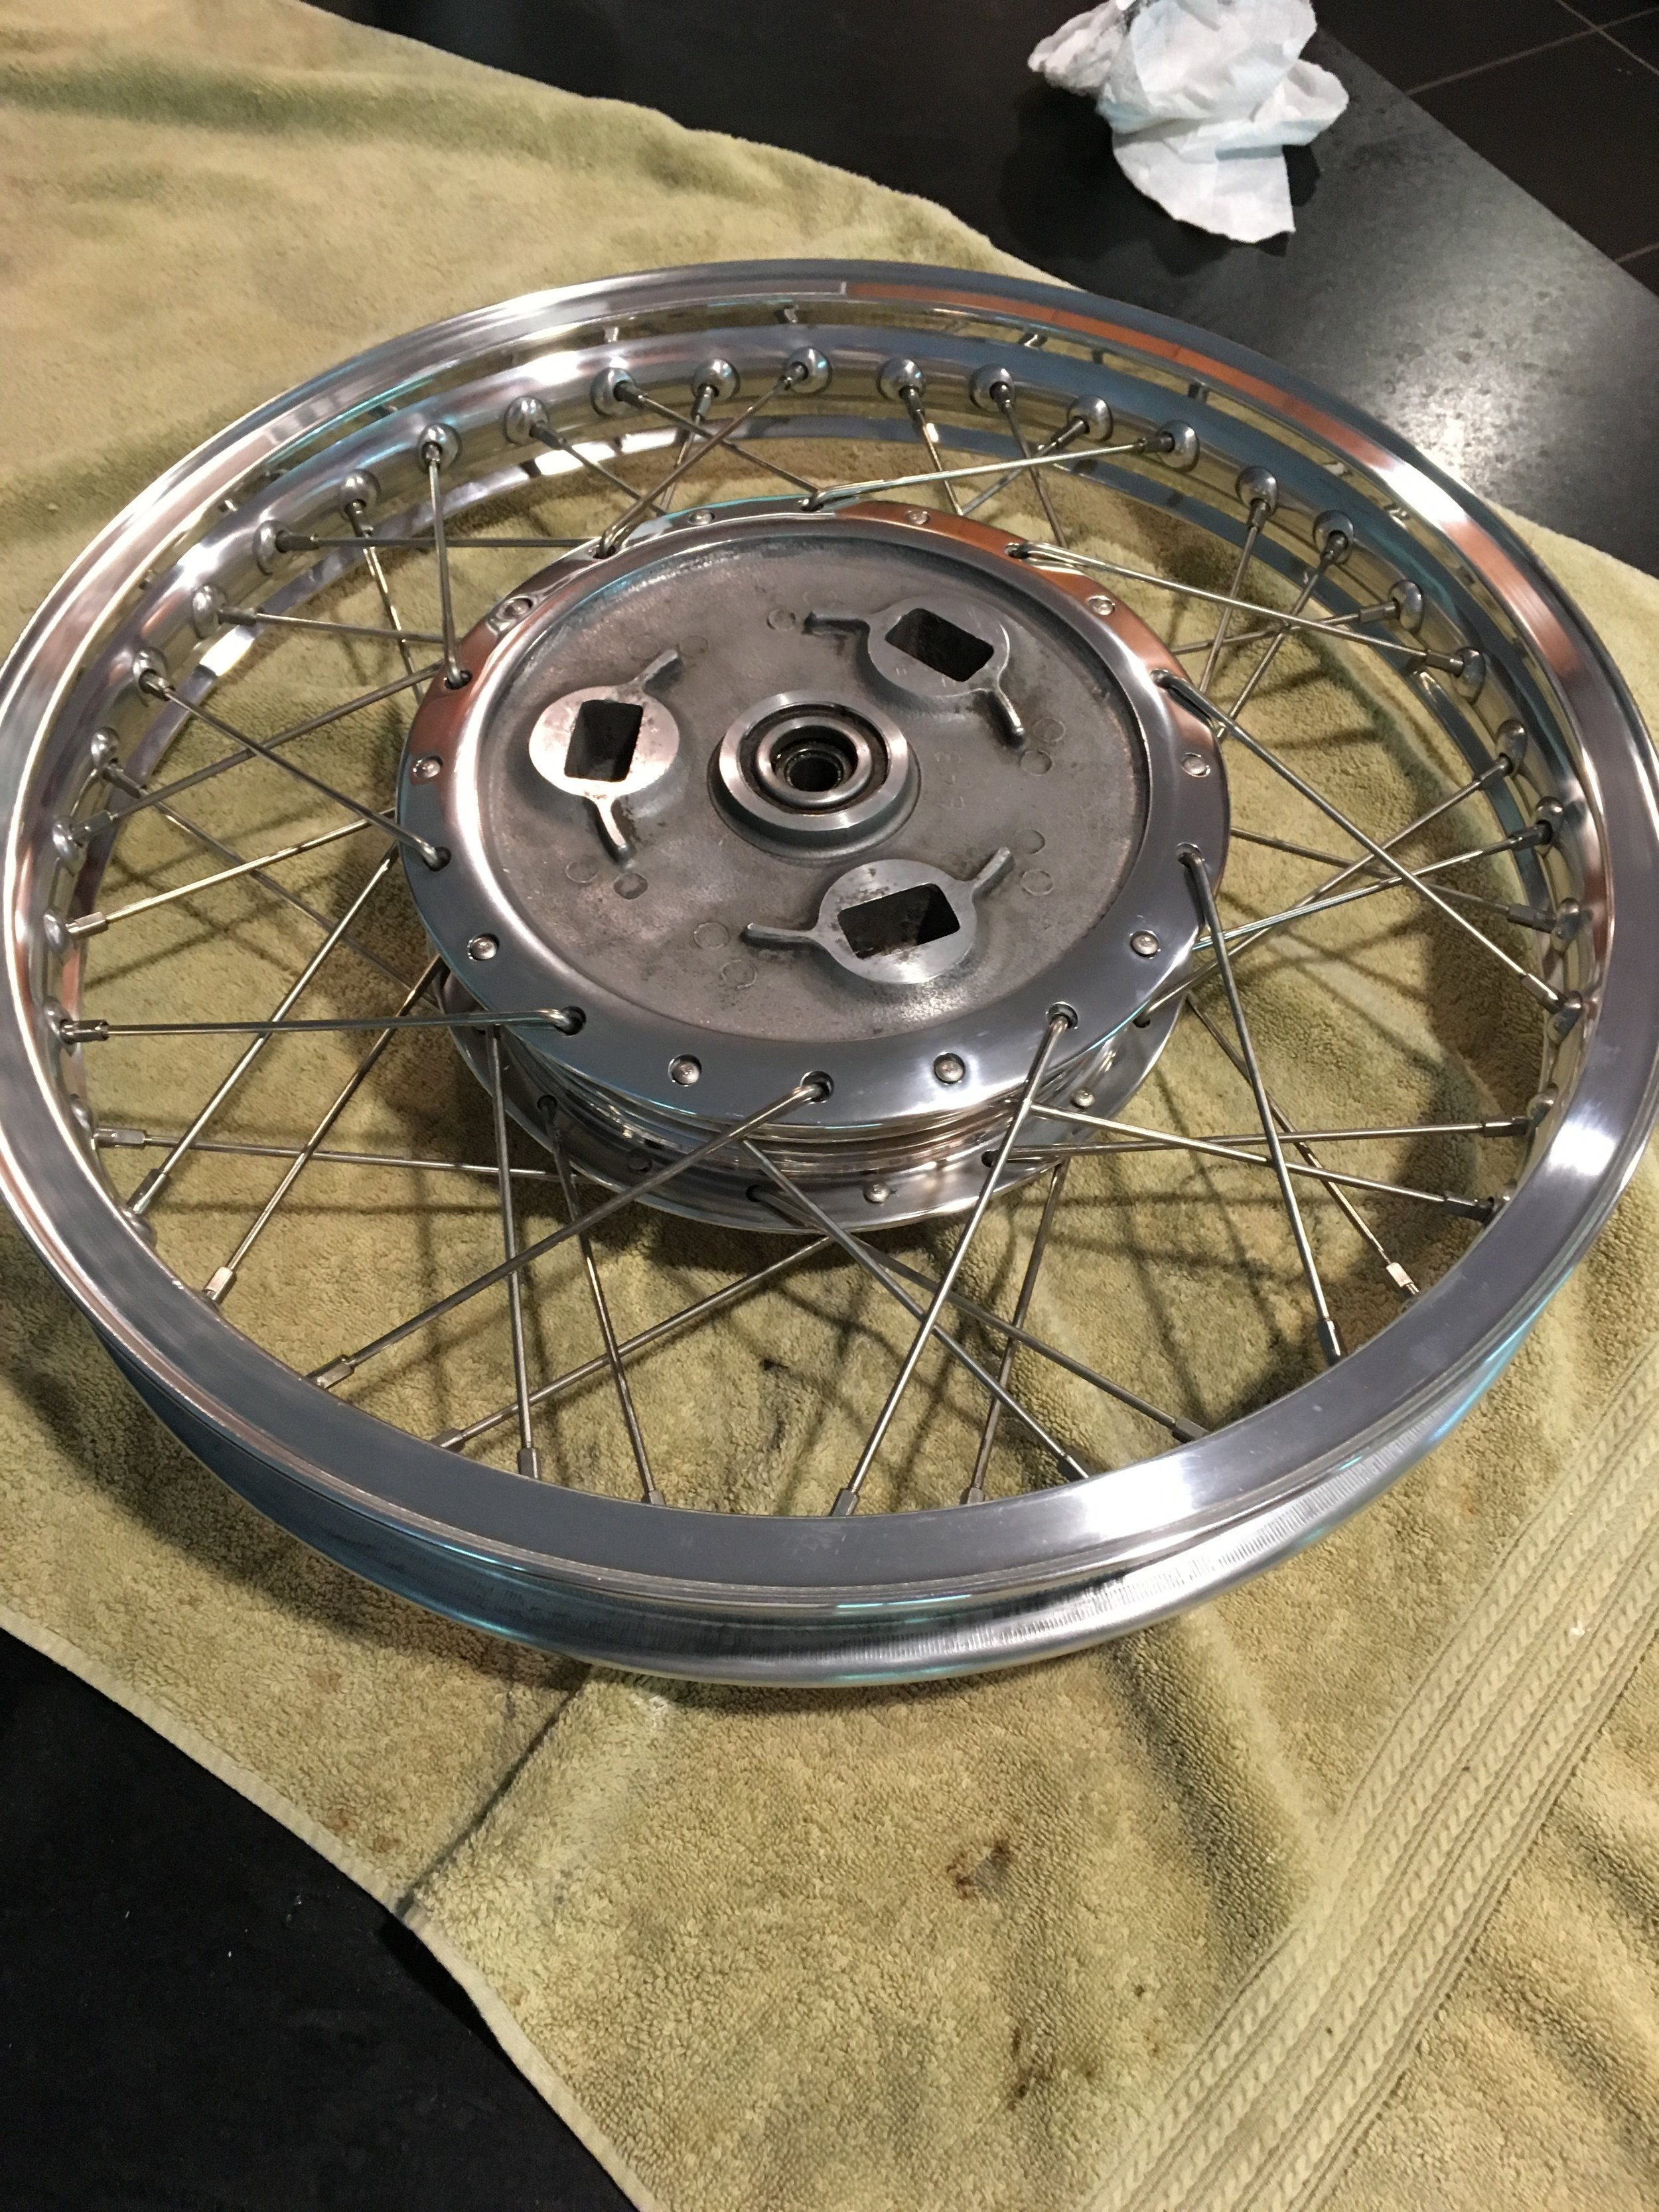 Found a nice Jones shouldered rim and some Buchanan stainless spokes to finish up the wheel.